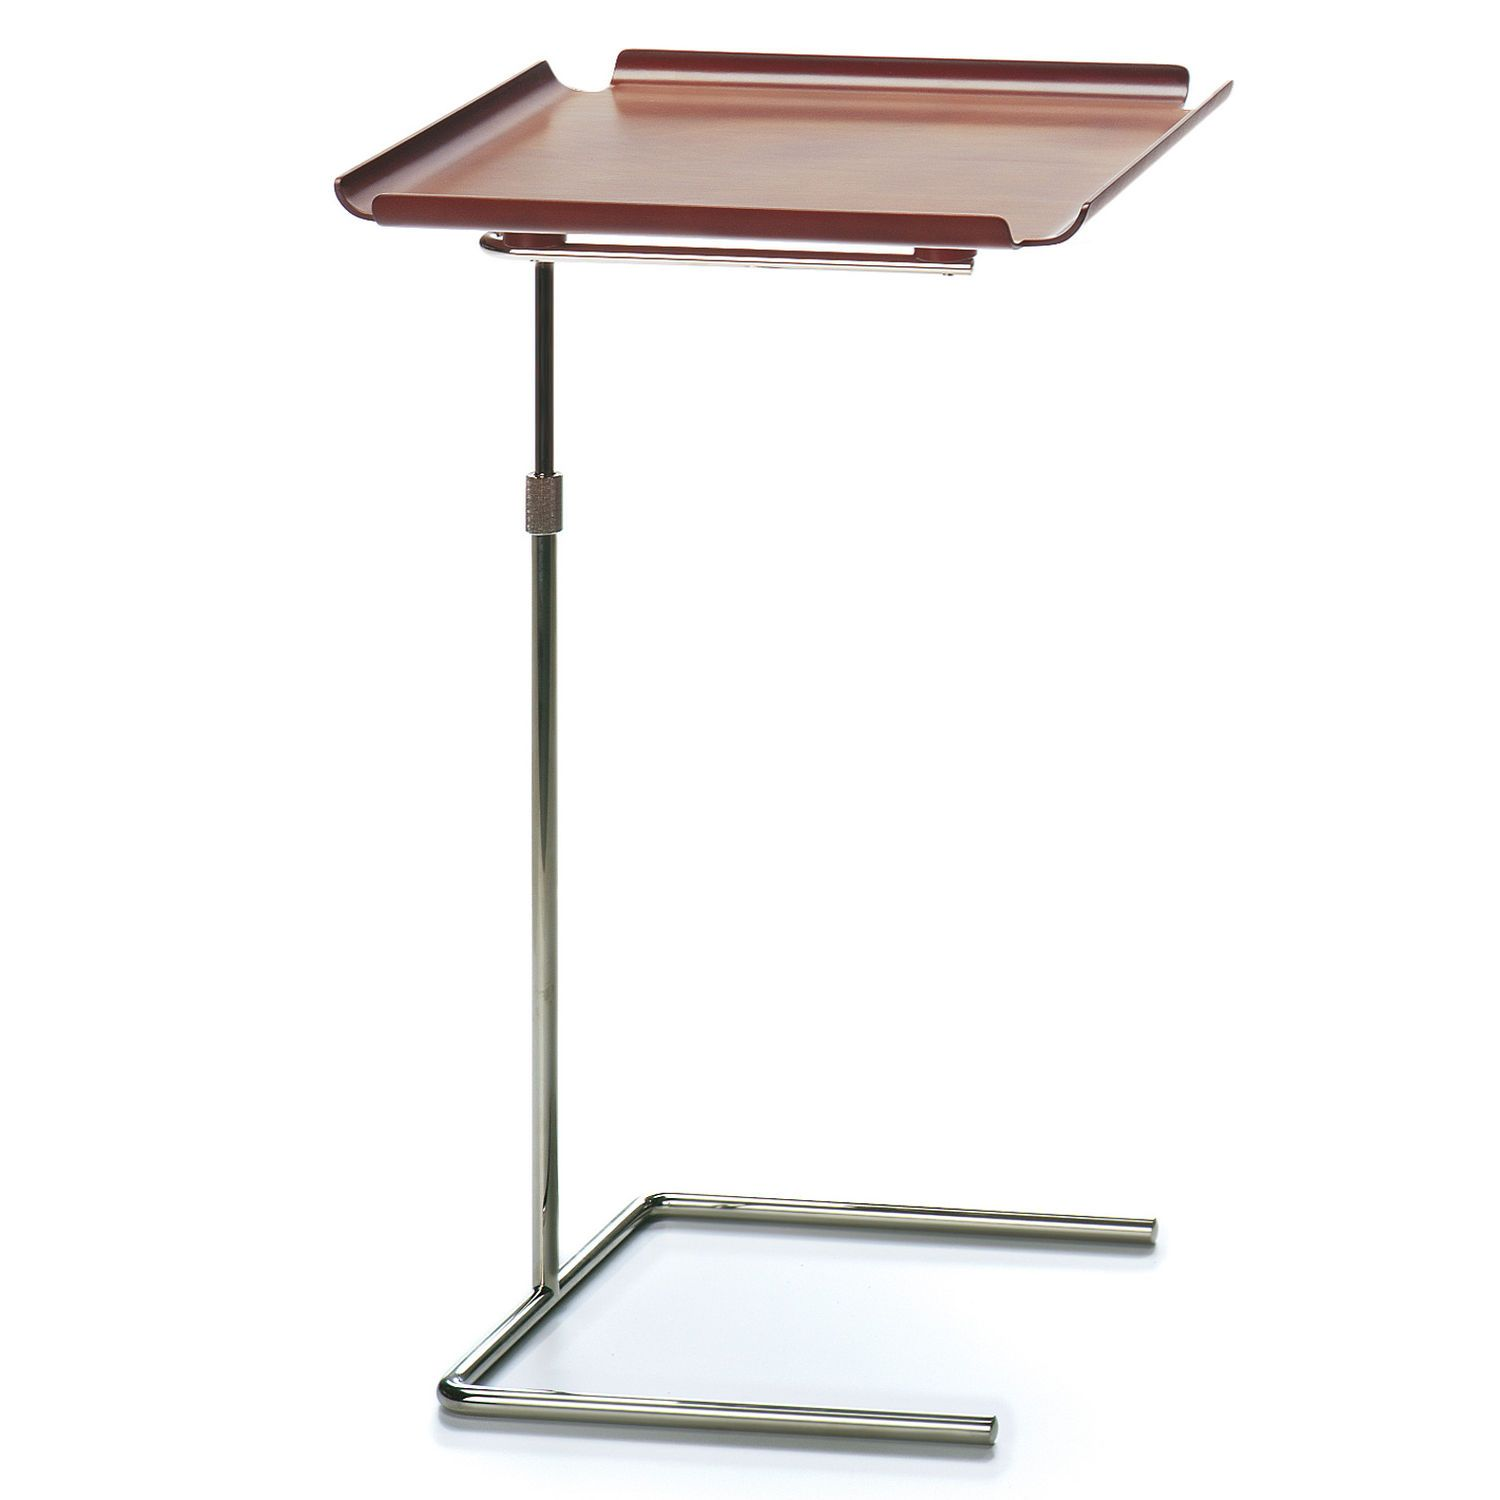 Beistelltisch Modern beistelltisch modern für innenbereich george nelson tray